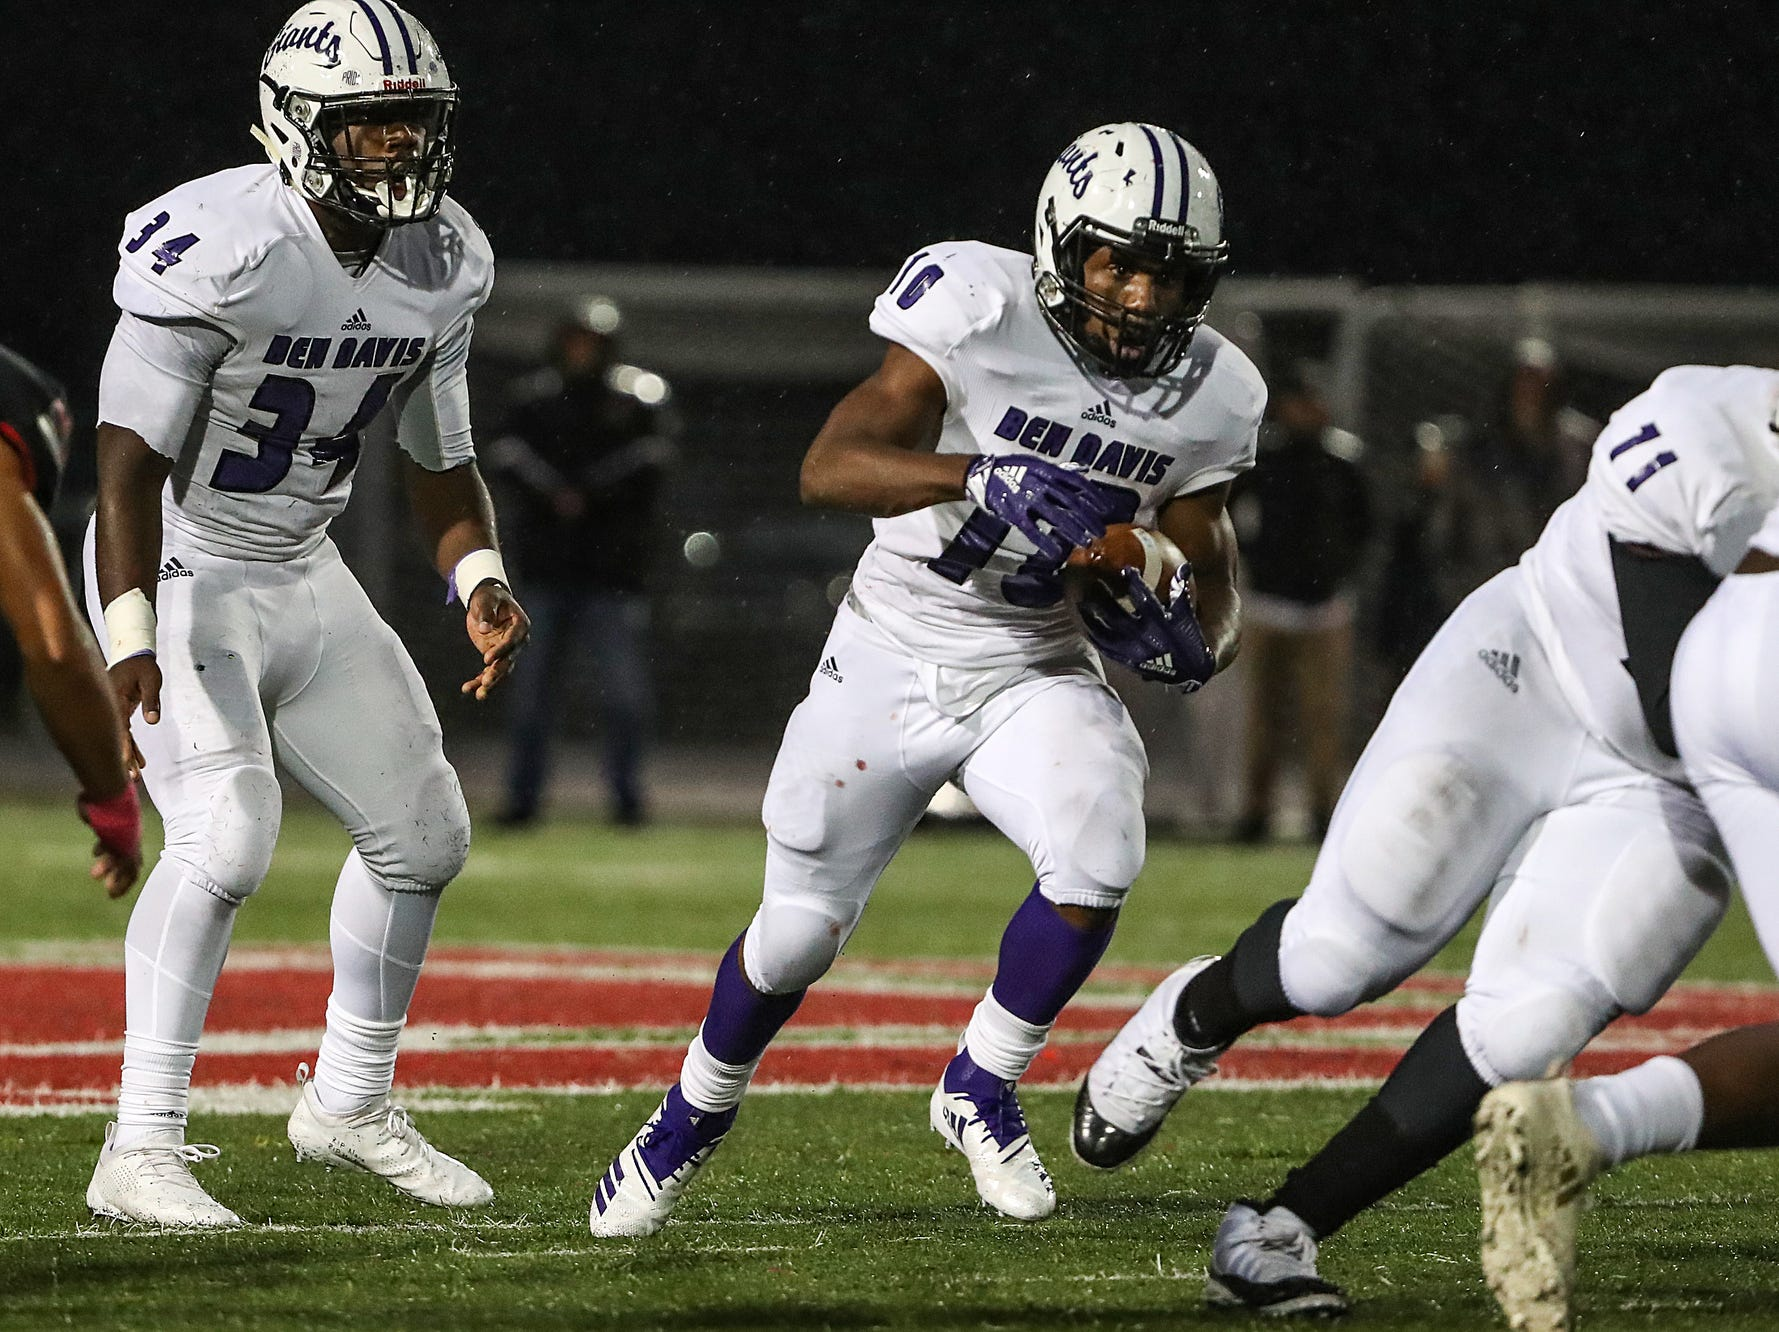 Ben Davis Giants running back Alijawon Hassel (10) takes a hand off from Delbert Mimms (34) in the first half of the game at North Central High School in Indianapolis, Oct. 12, 2018.